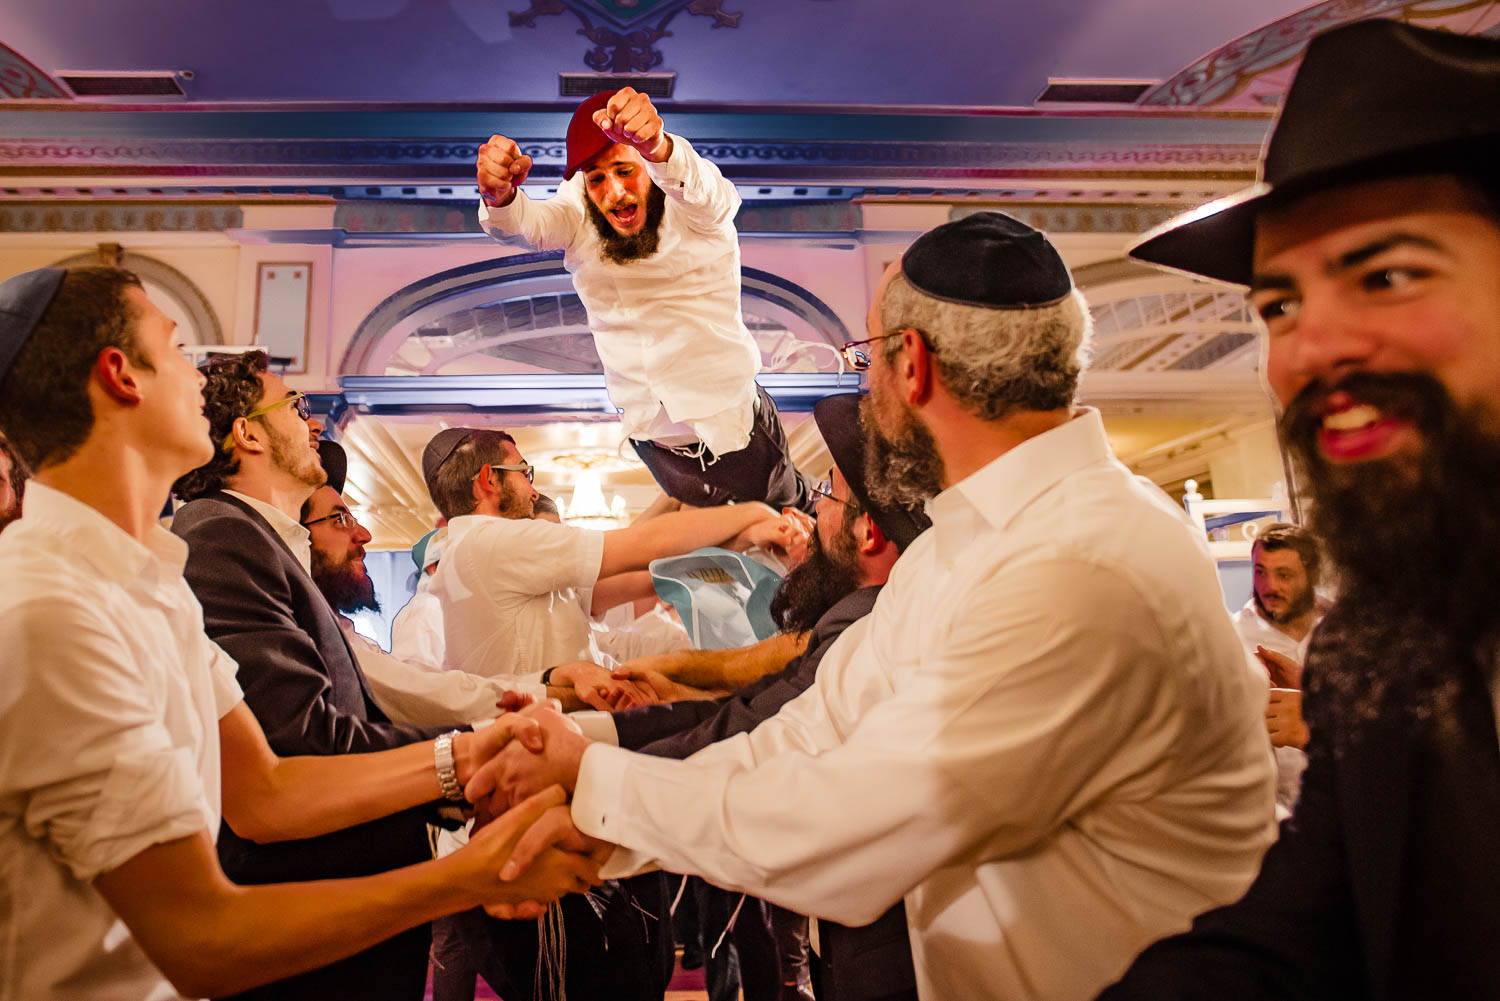 Brooklyn Jewish Wedding